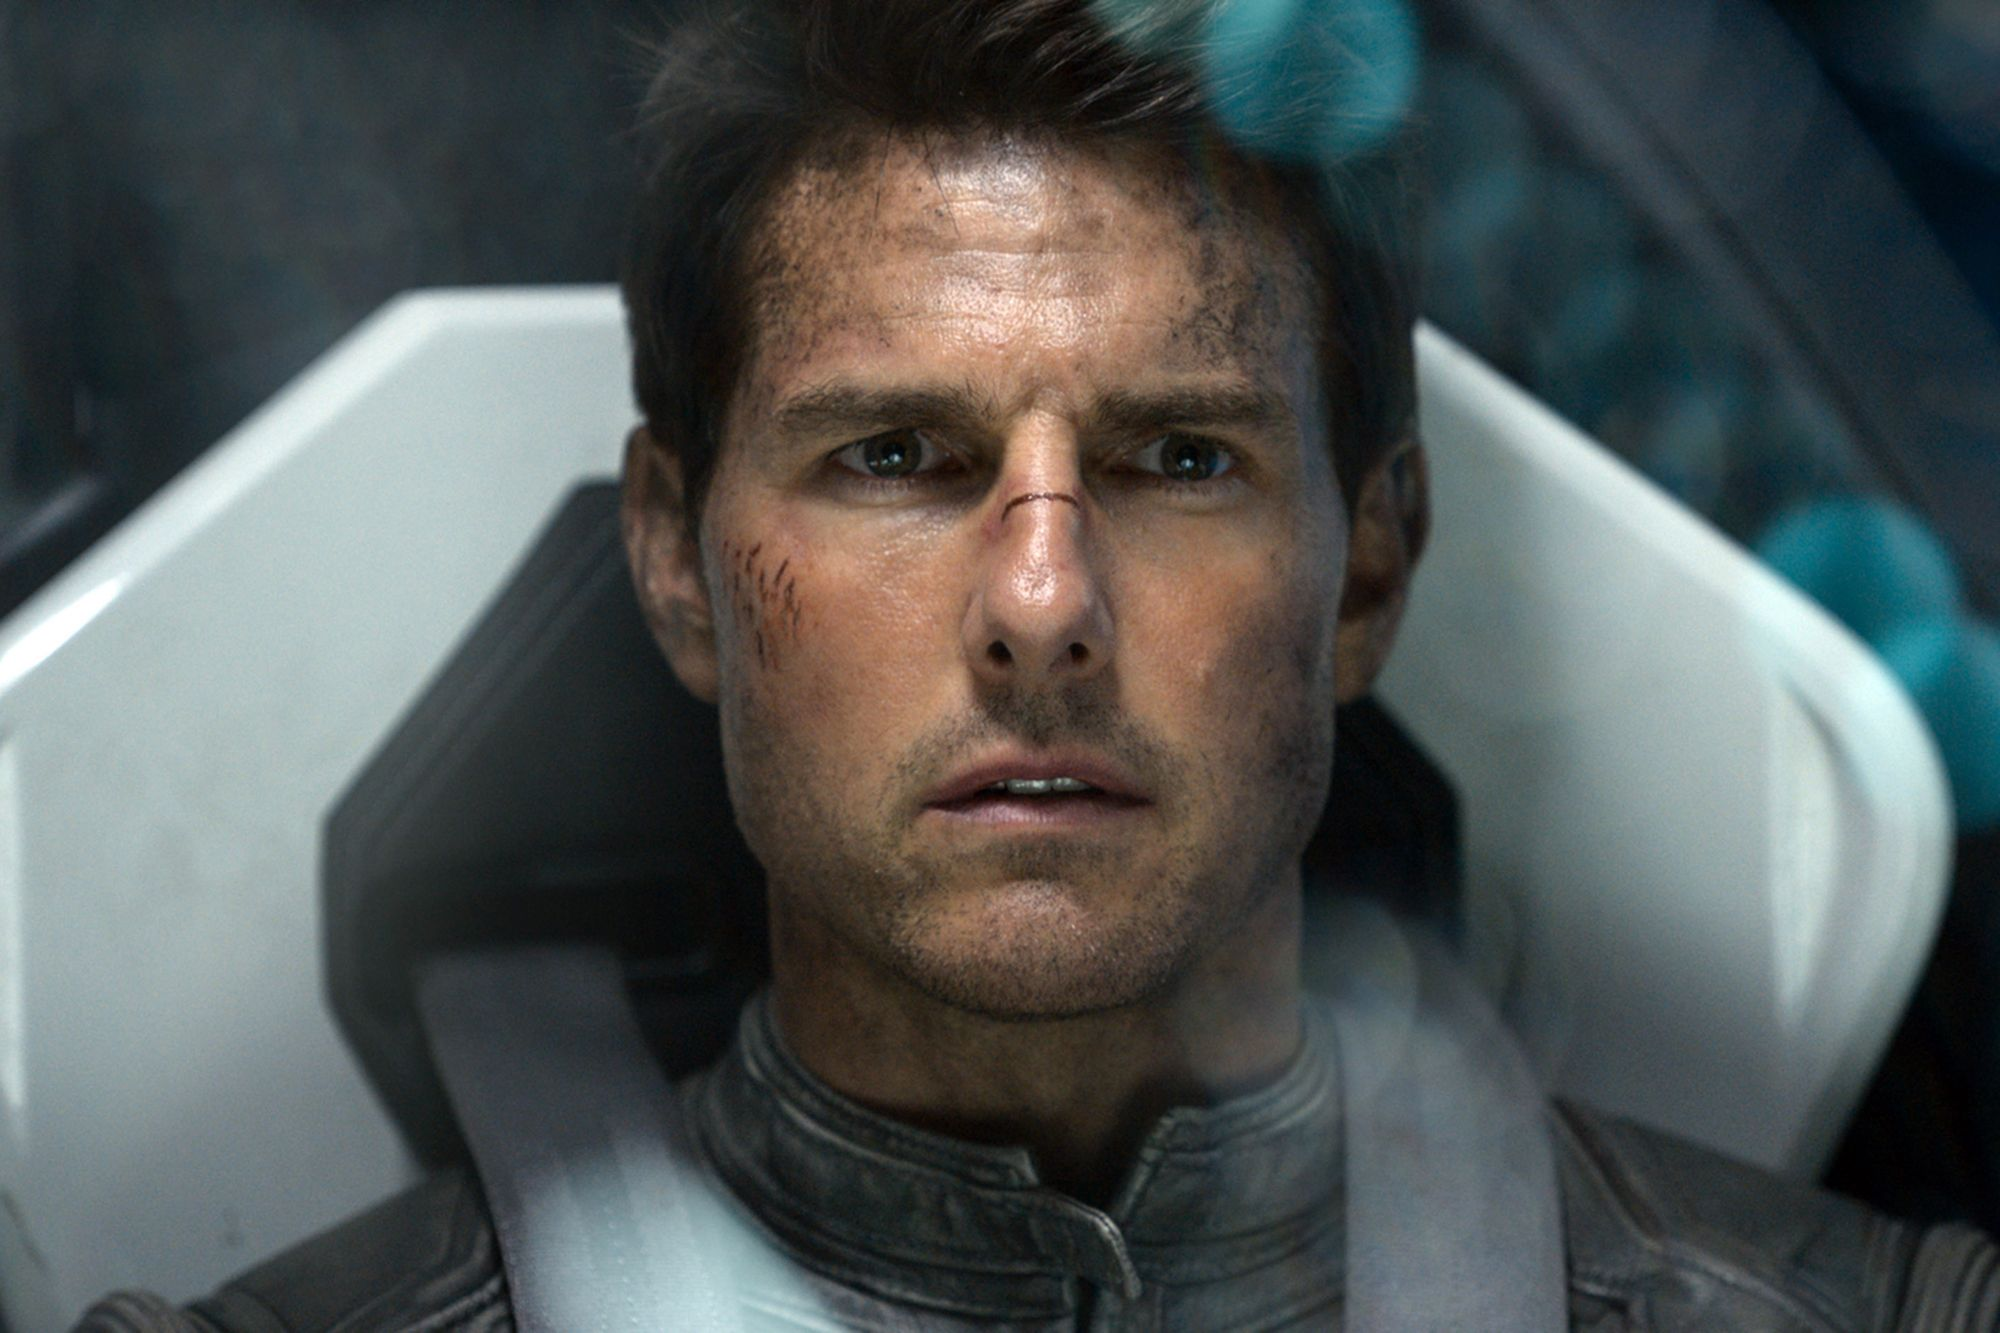 NASA is working with Tom Cruise to shoot a film in outer space. Yes, really - Jaime Bonetti Zeller